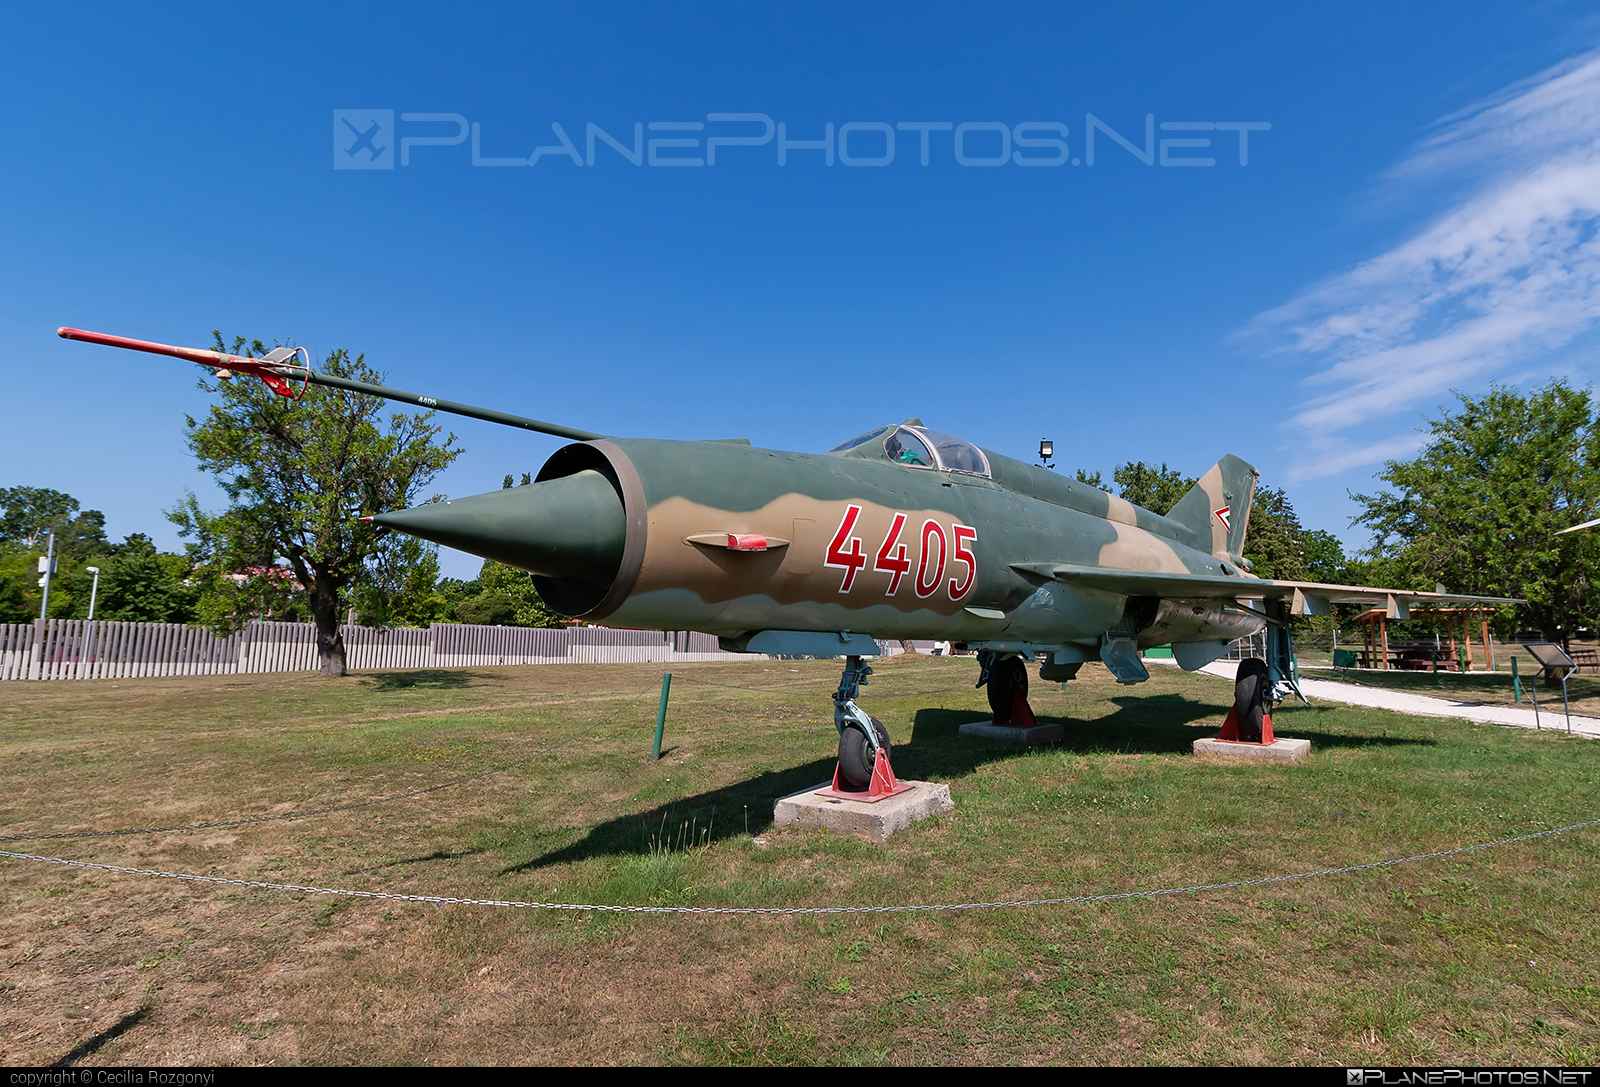 Mikoyan-Gurevich MiG-21MF - 4405 operated by Magyar Légierő (Hungarian Air Force) #hungarianairforce #magyarlegiero #mig #mig21 #mig21mf #mikoyangurevich